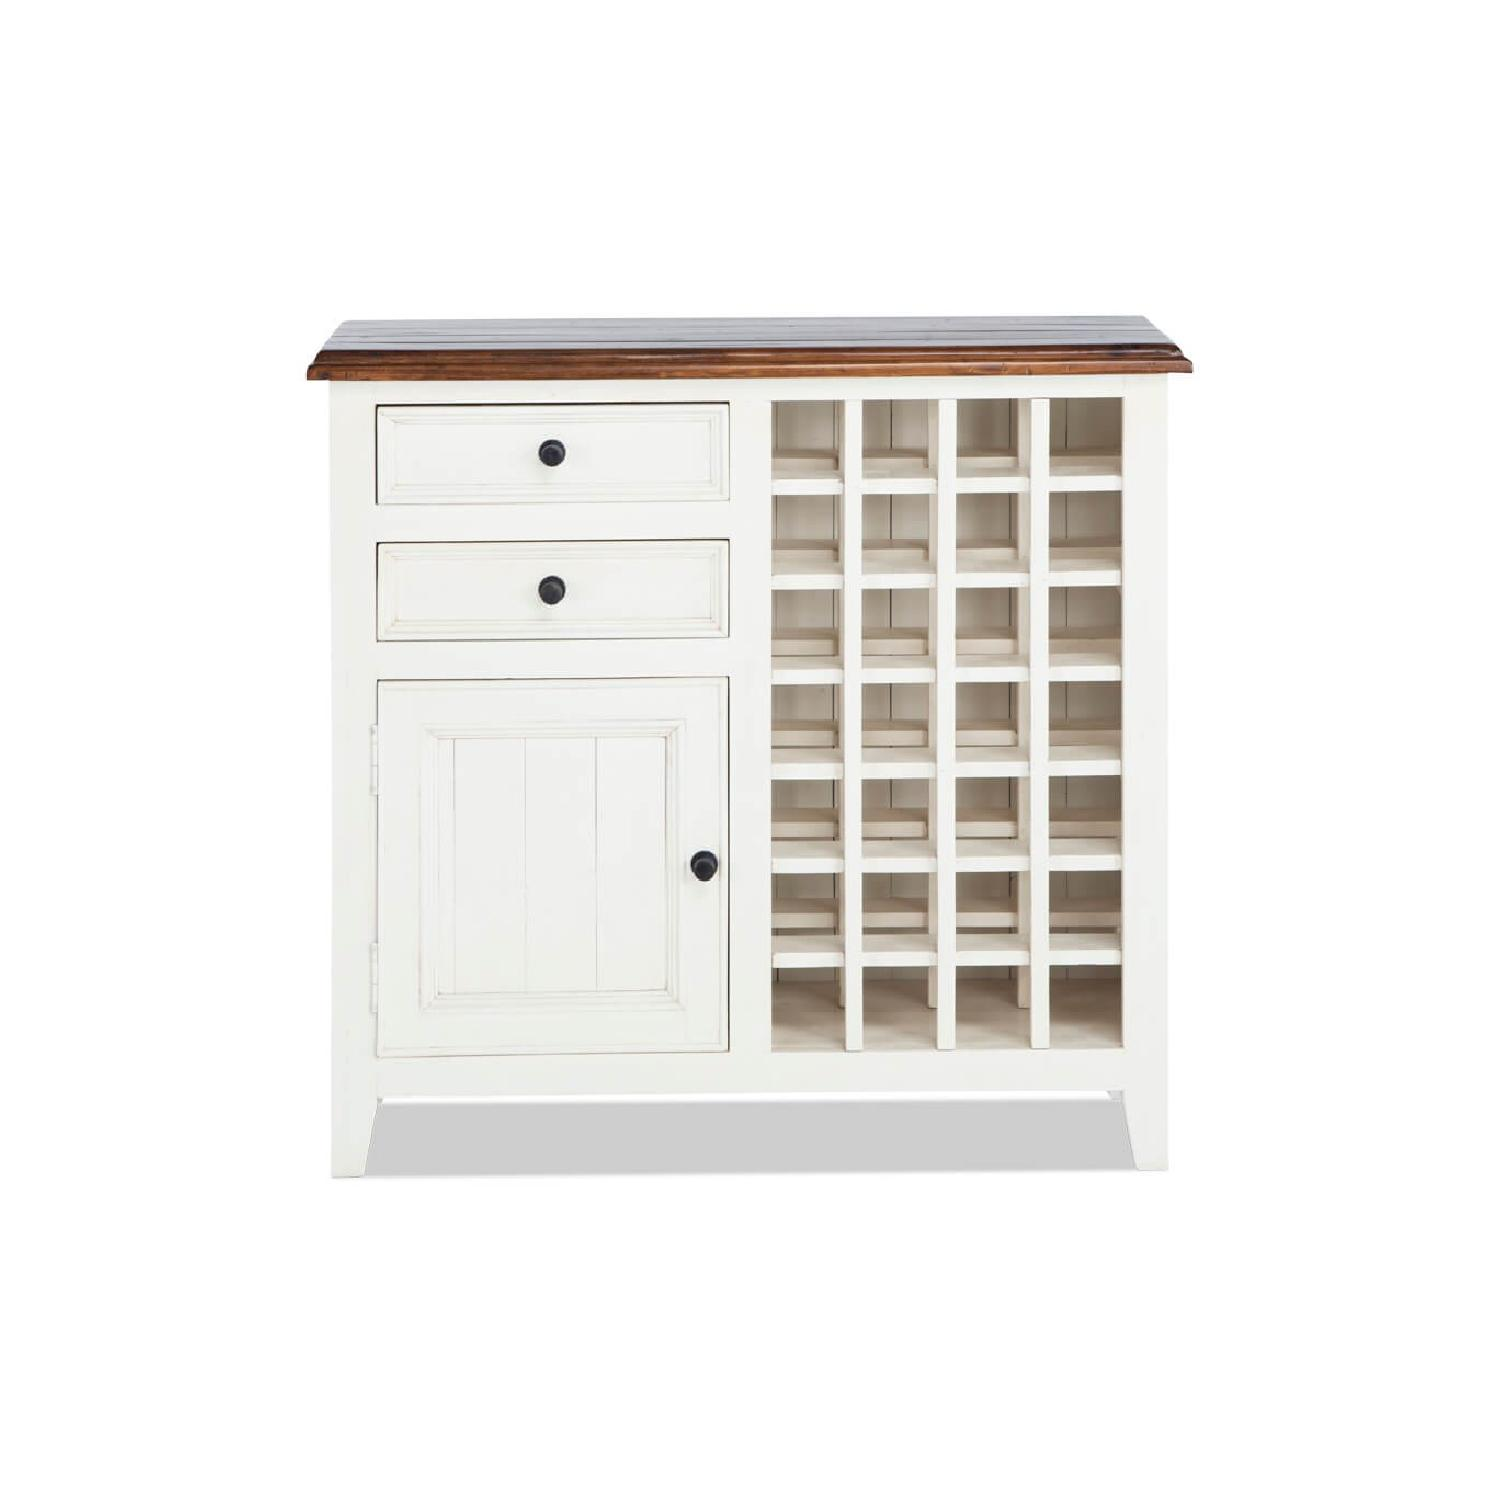 Bob's Wine Storage Cabinet White